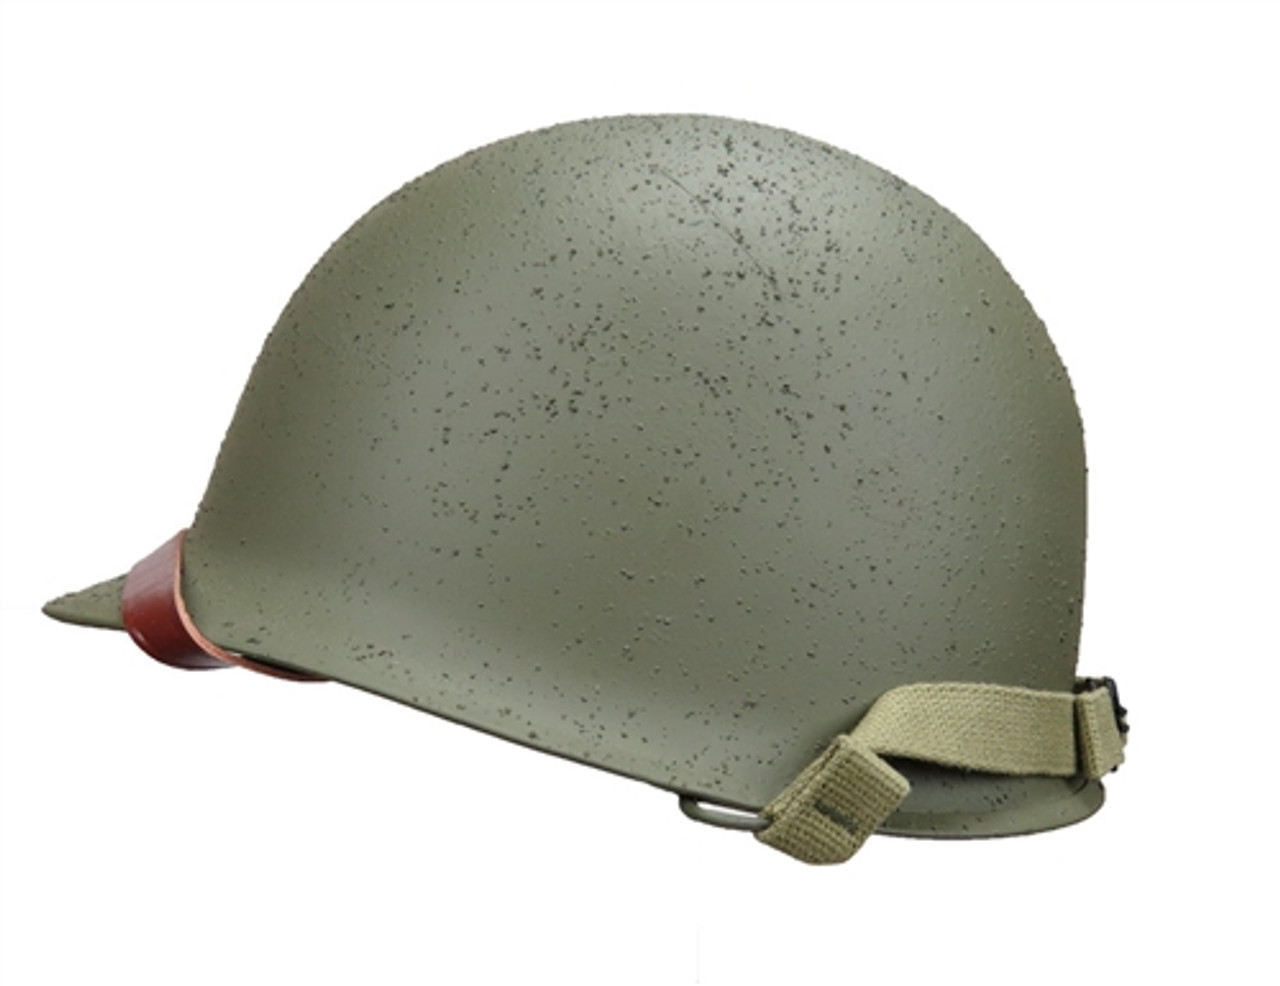 Front Seam M1 Helmet and Liner (WWII GI Shell and Liner) from Hessen Antique